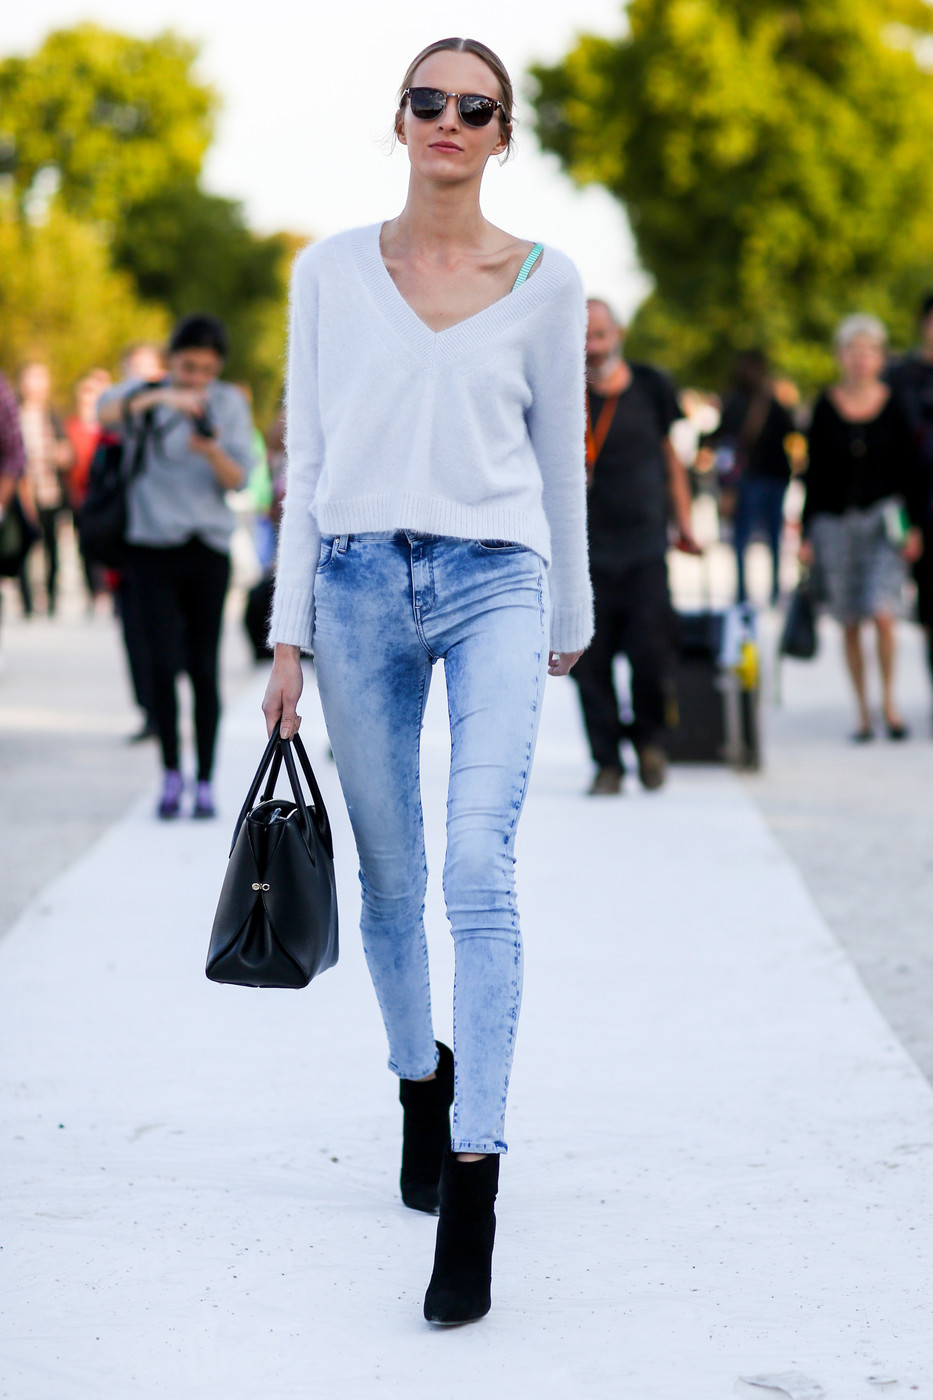 Cropped Sweater Best Street Style From Paris Fashion